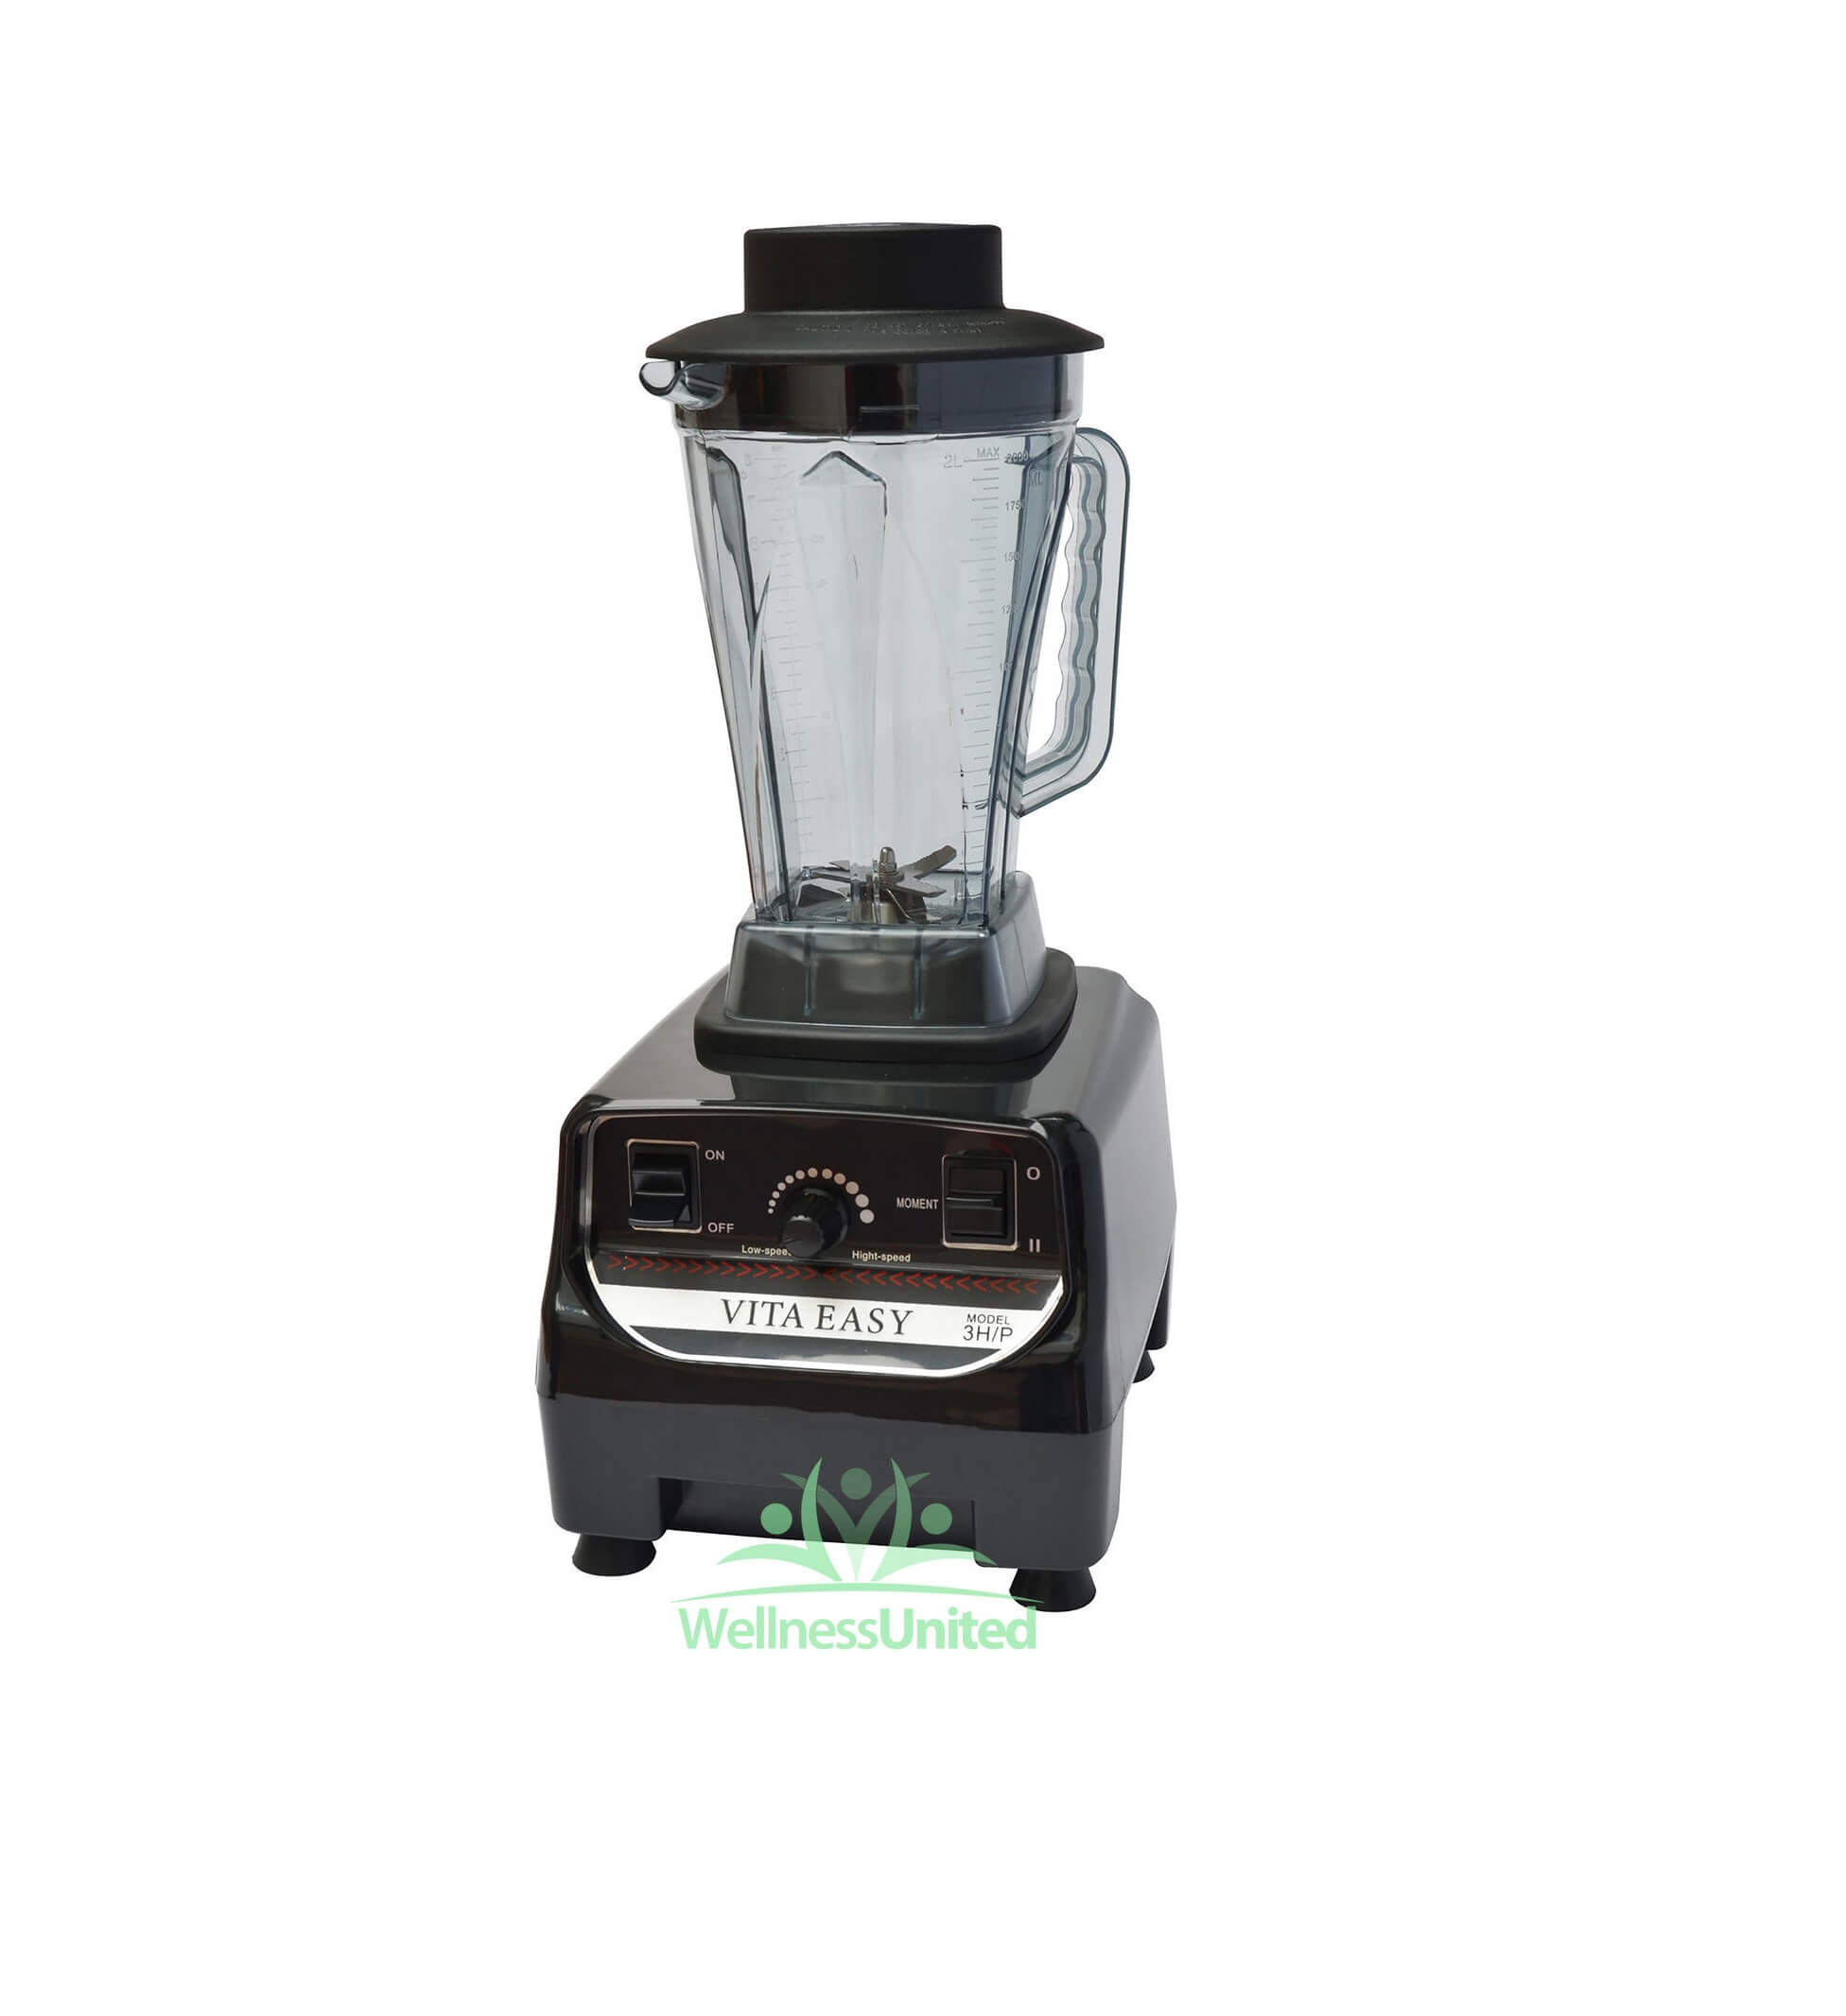 Vita-Easy blender, VE767